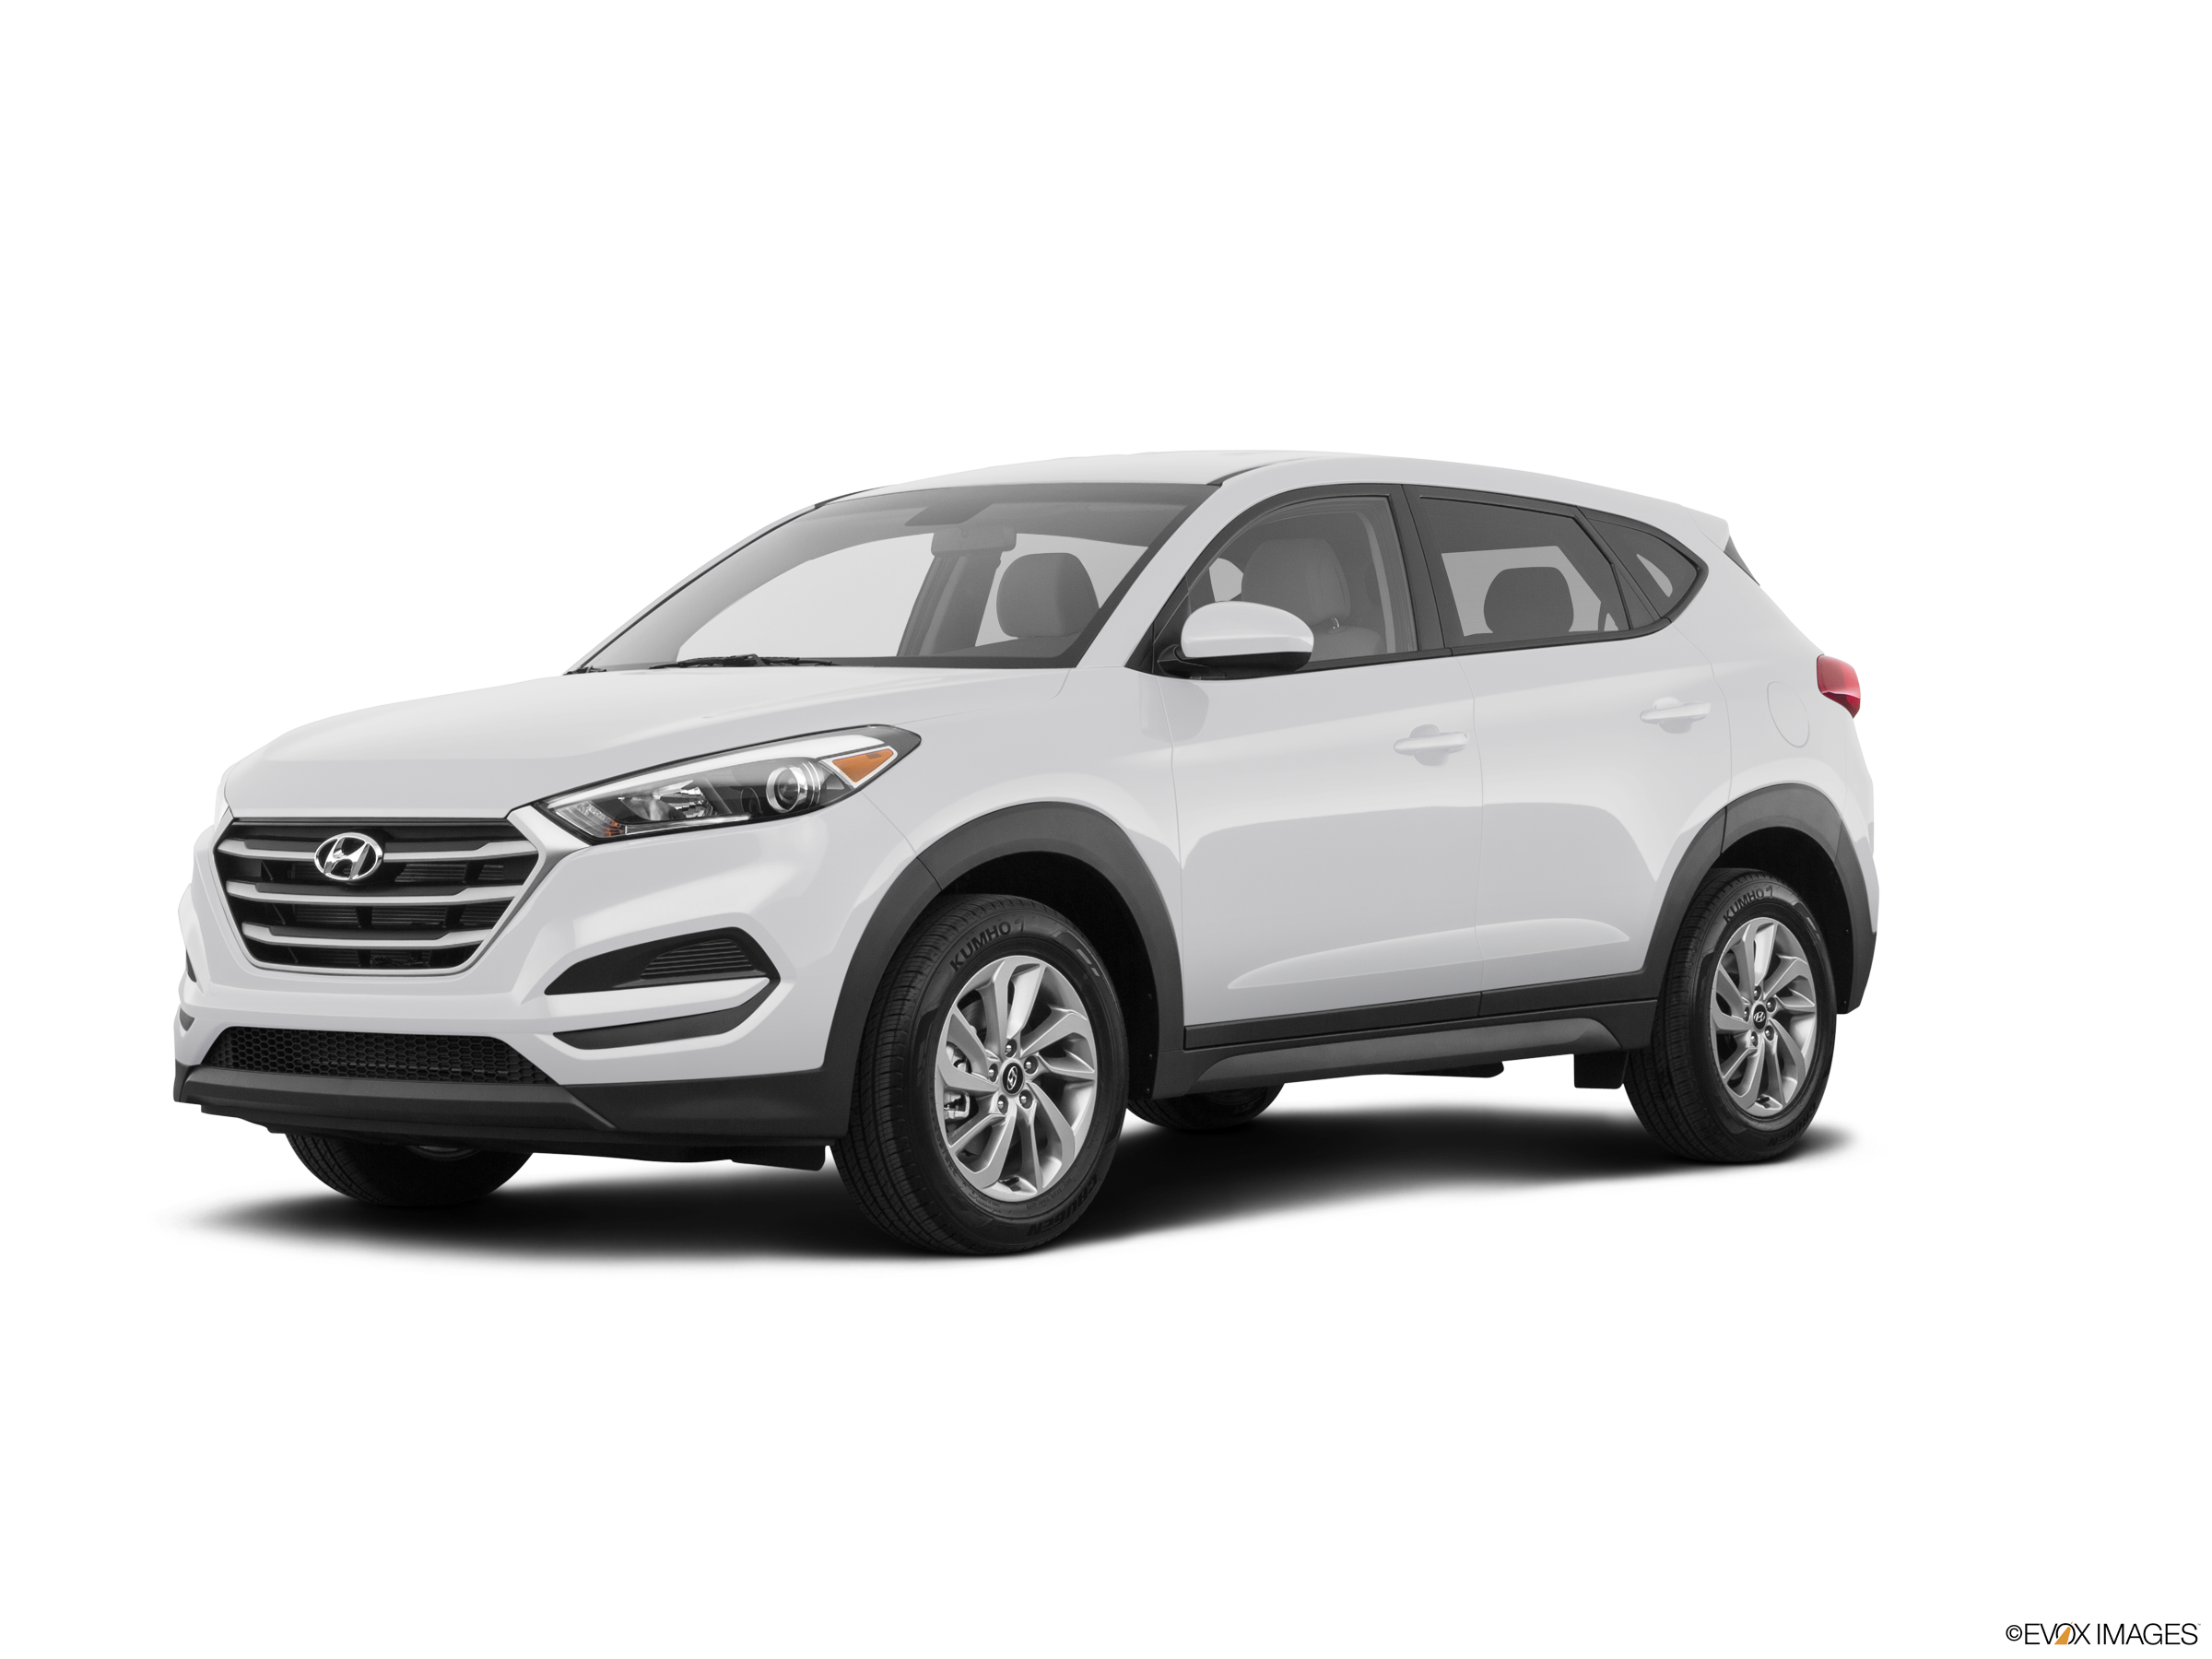 10 Best SUVs Under $25,000 - 2018 Hyundai Tucson